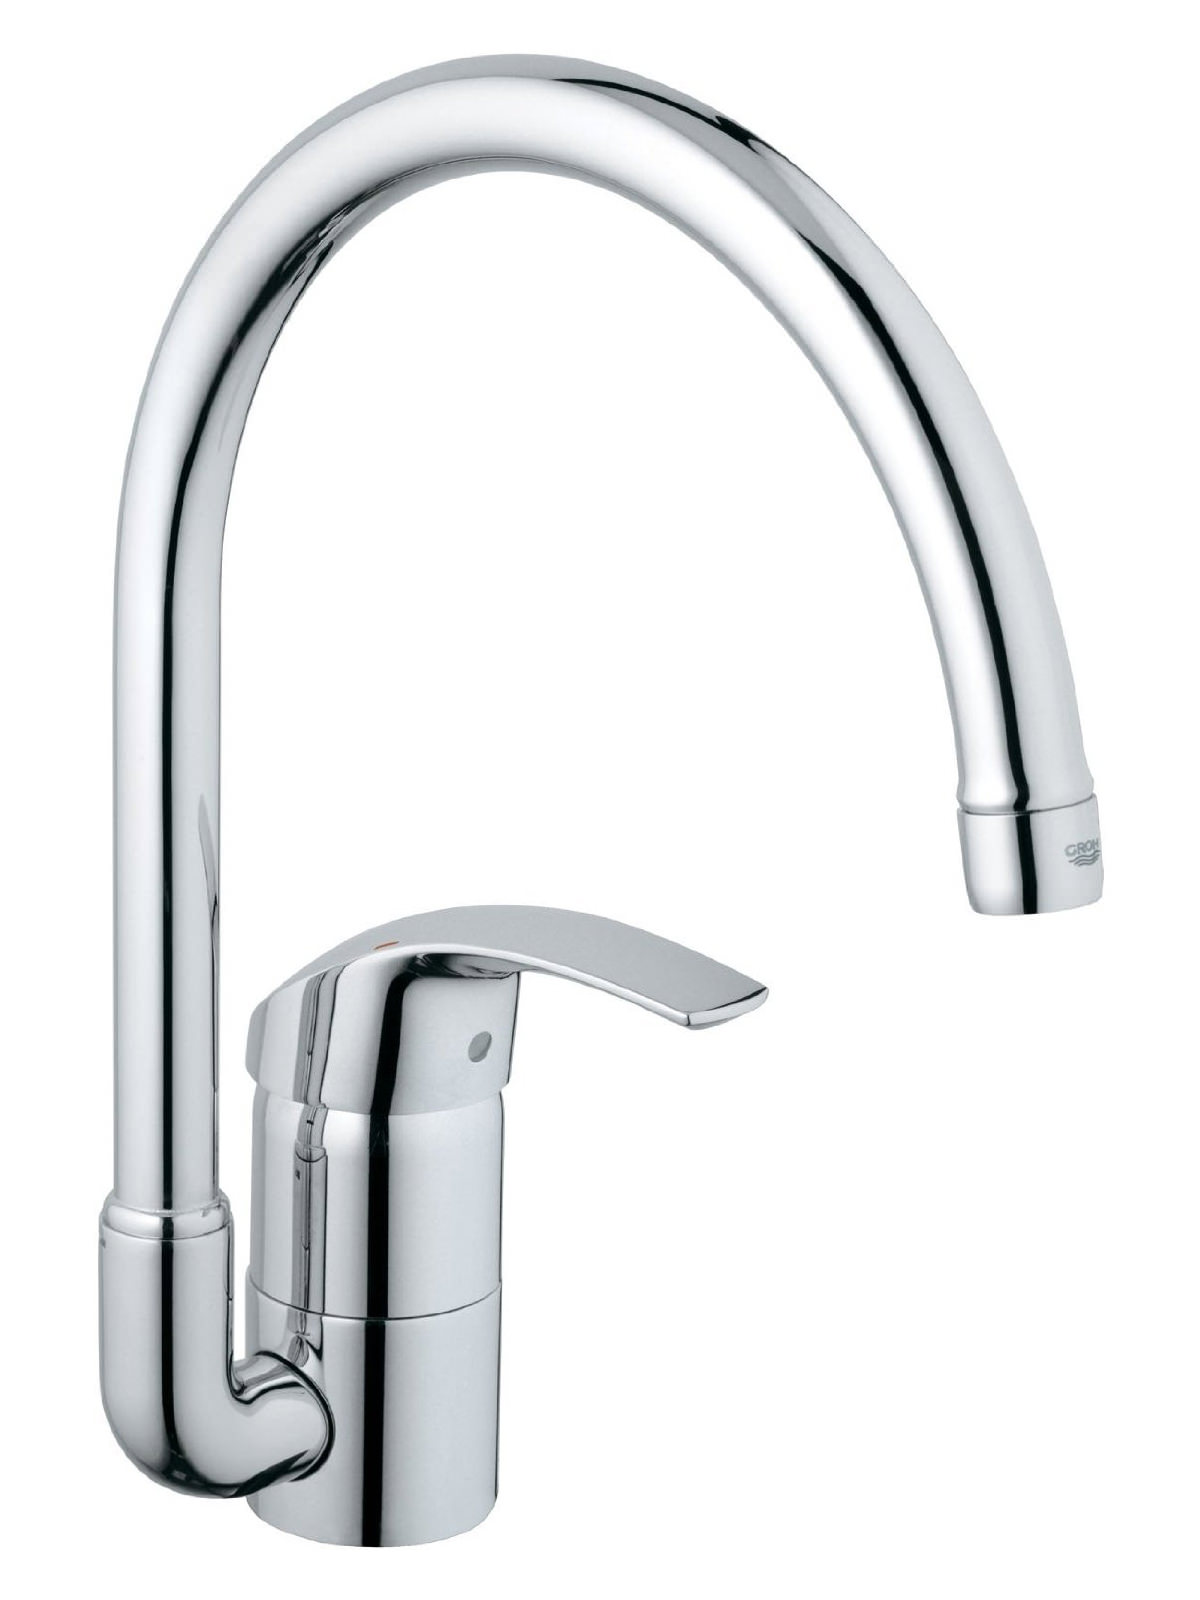 grohe eurosmart high spout half inch sink mixer tap 33202001. Black Bedroom Furniture Sets. Home Design Ideas